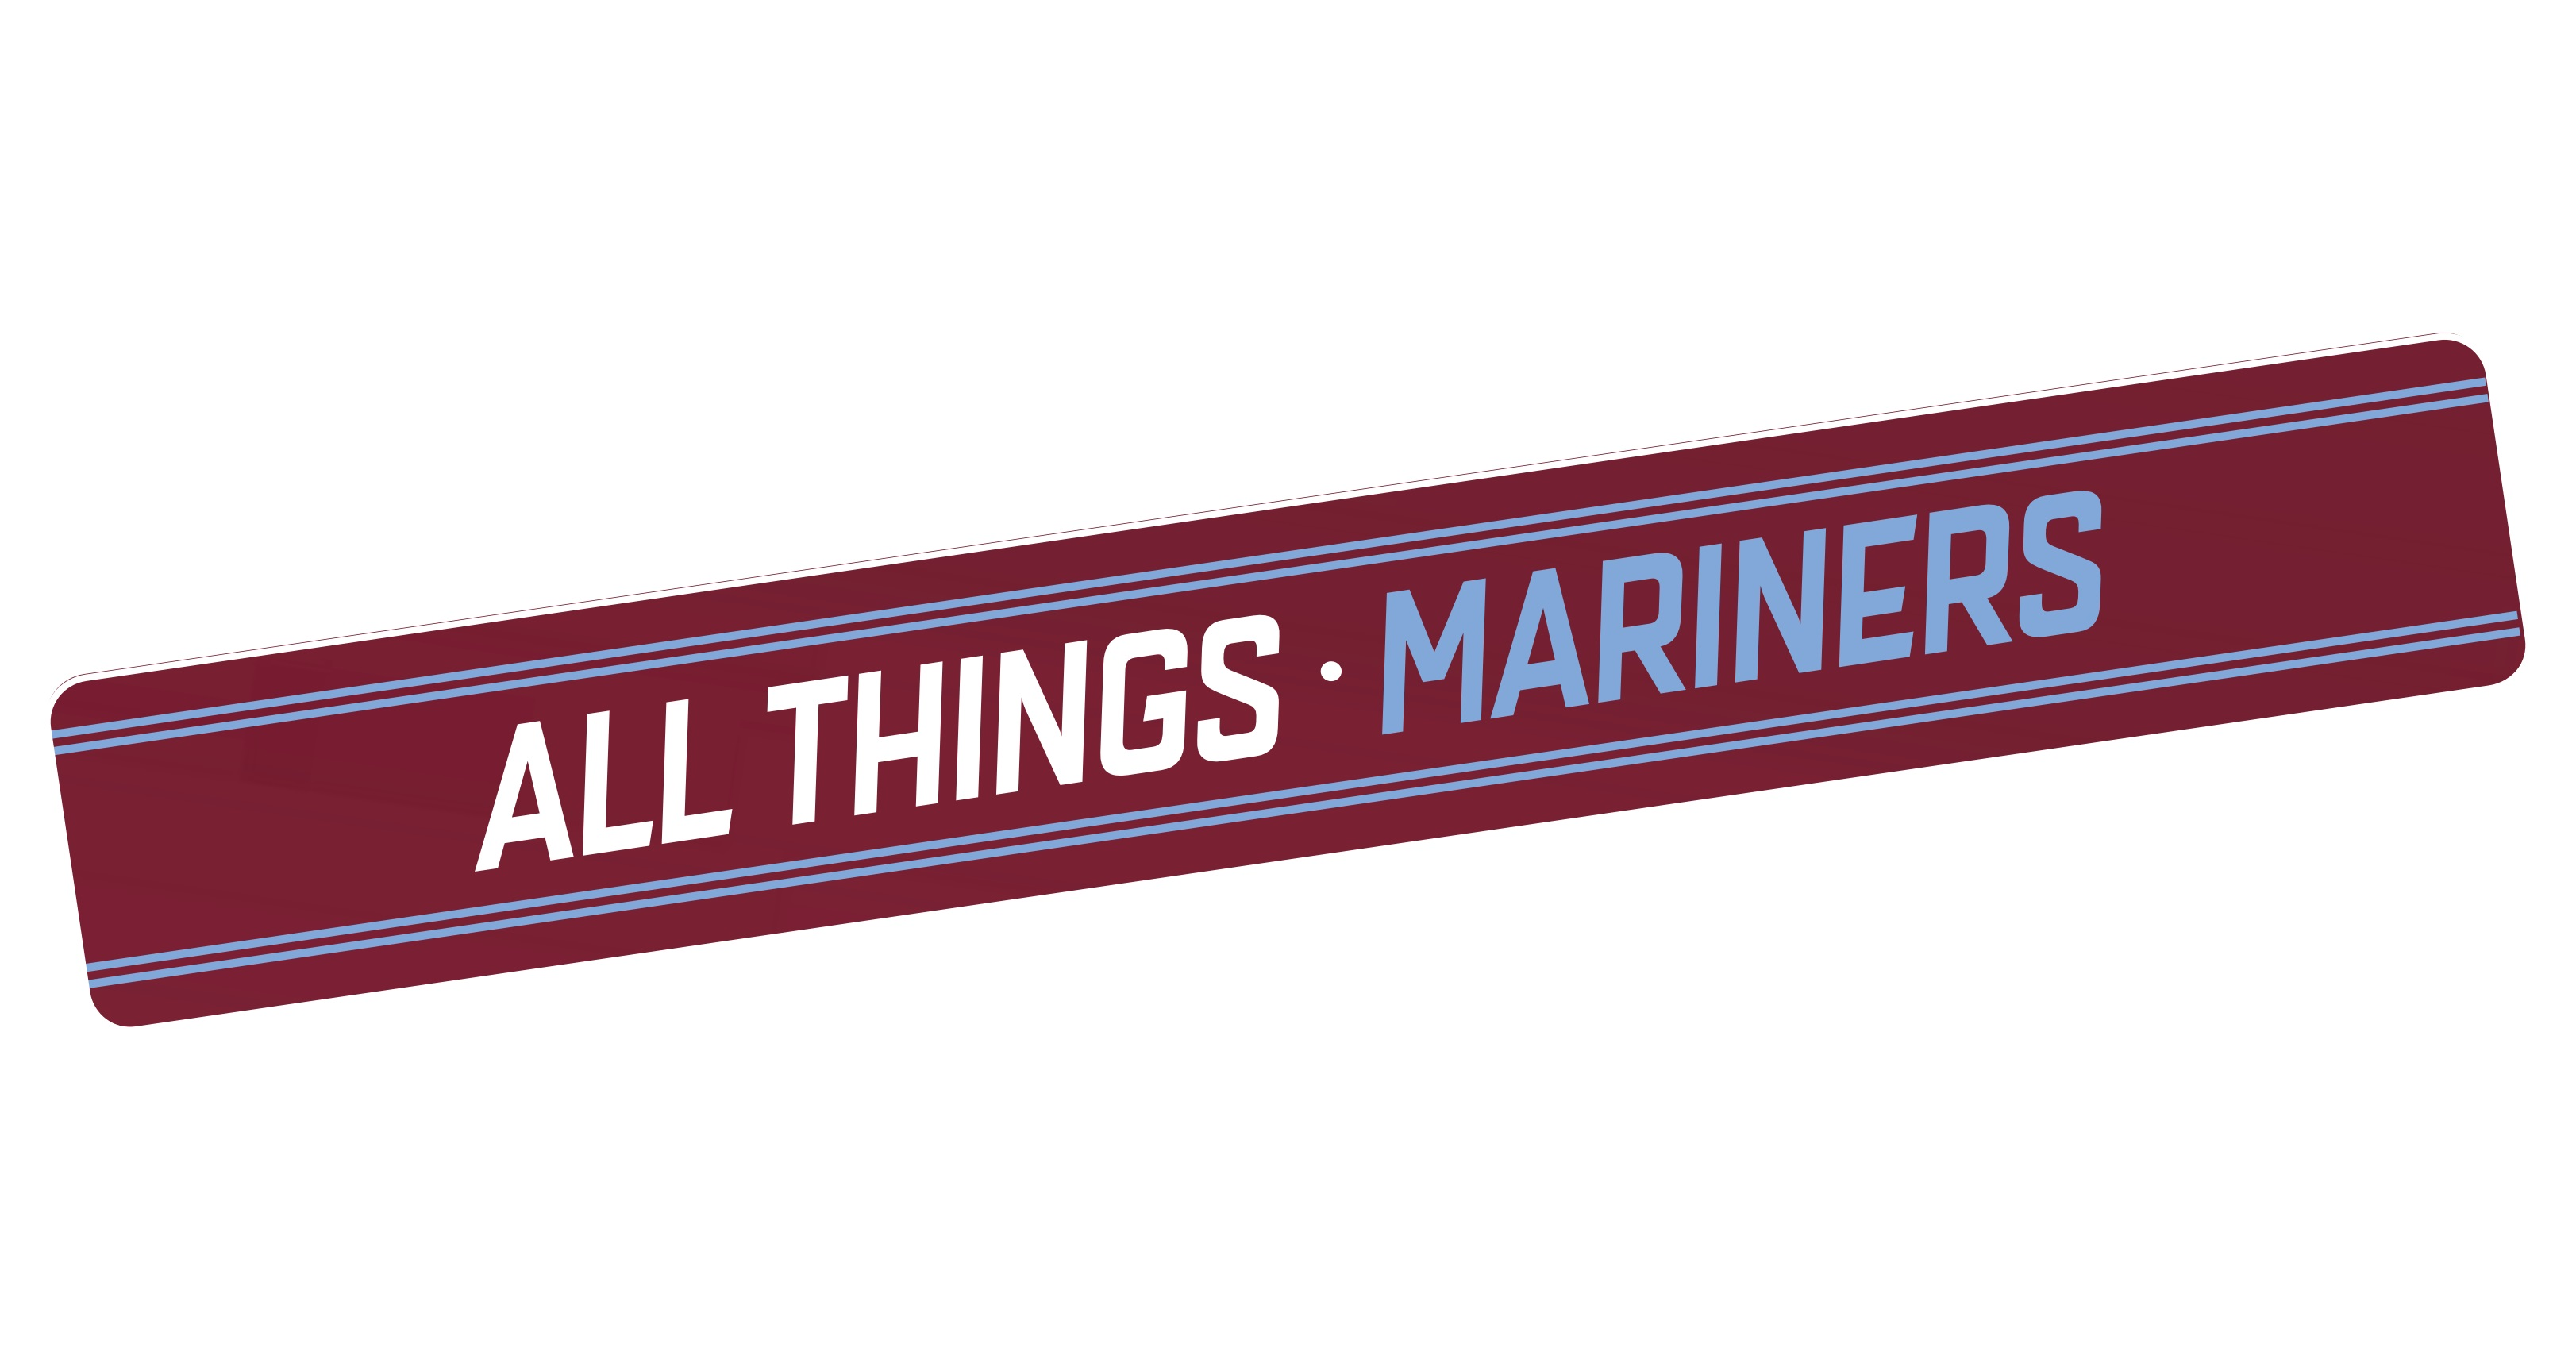 All Things Mariners